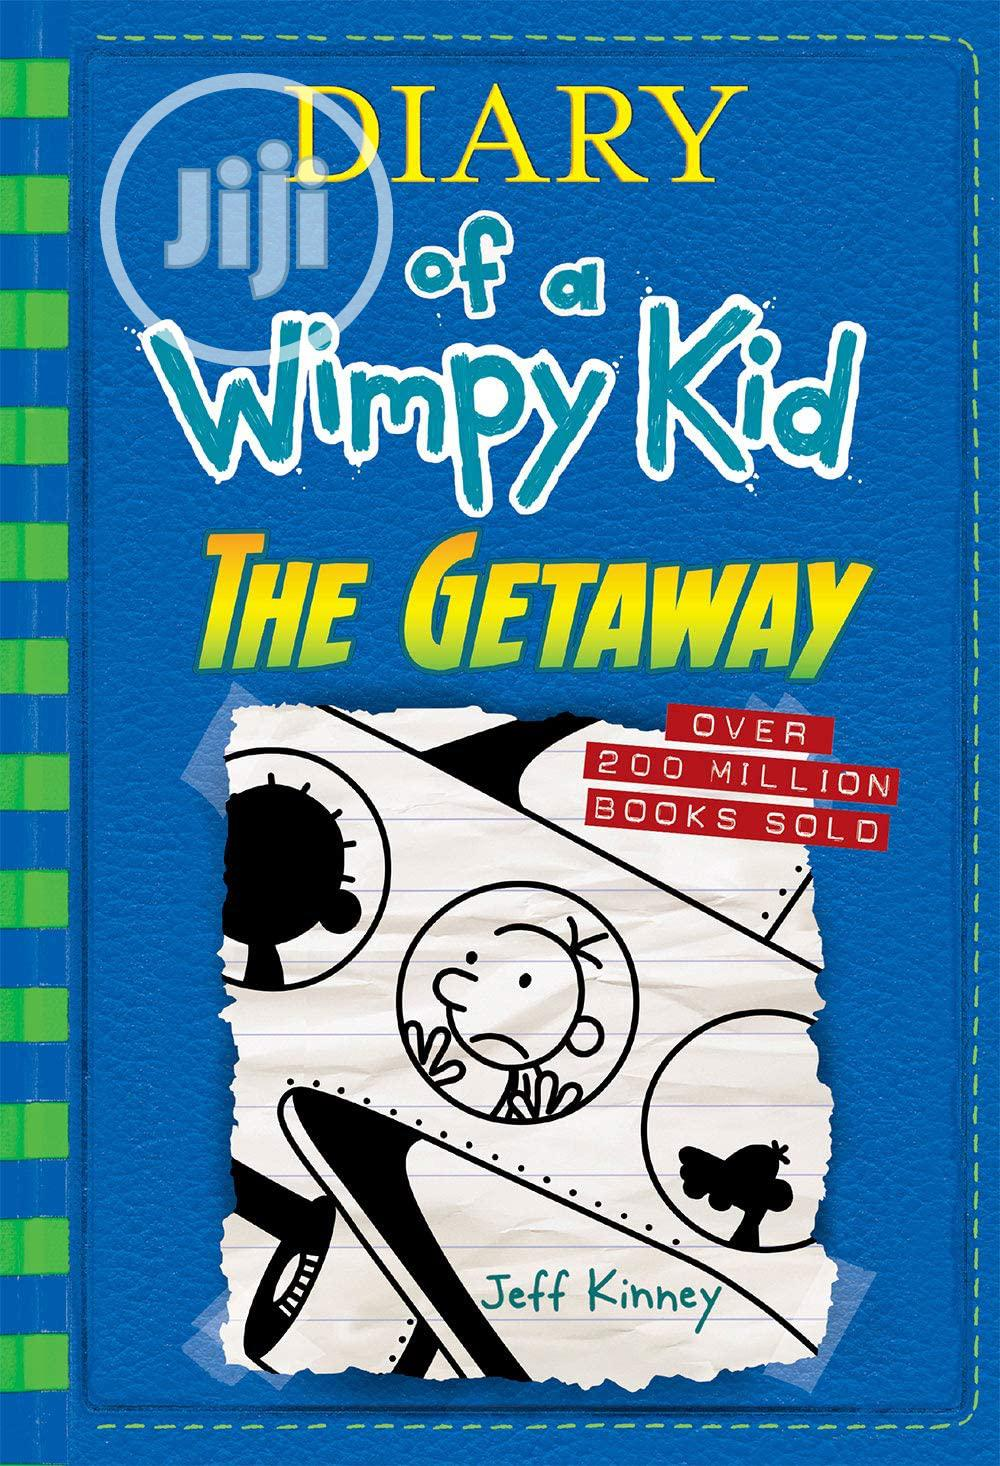 Archive: Diary of a Wimpy Kid Book 12: The Getaway by Jeff Kinney